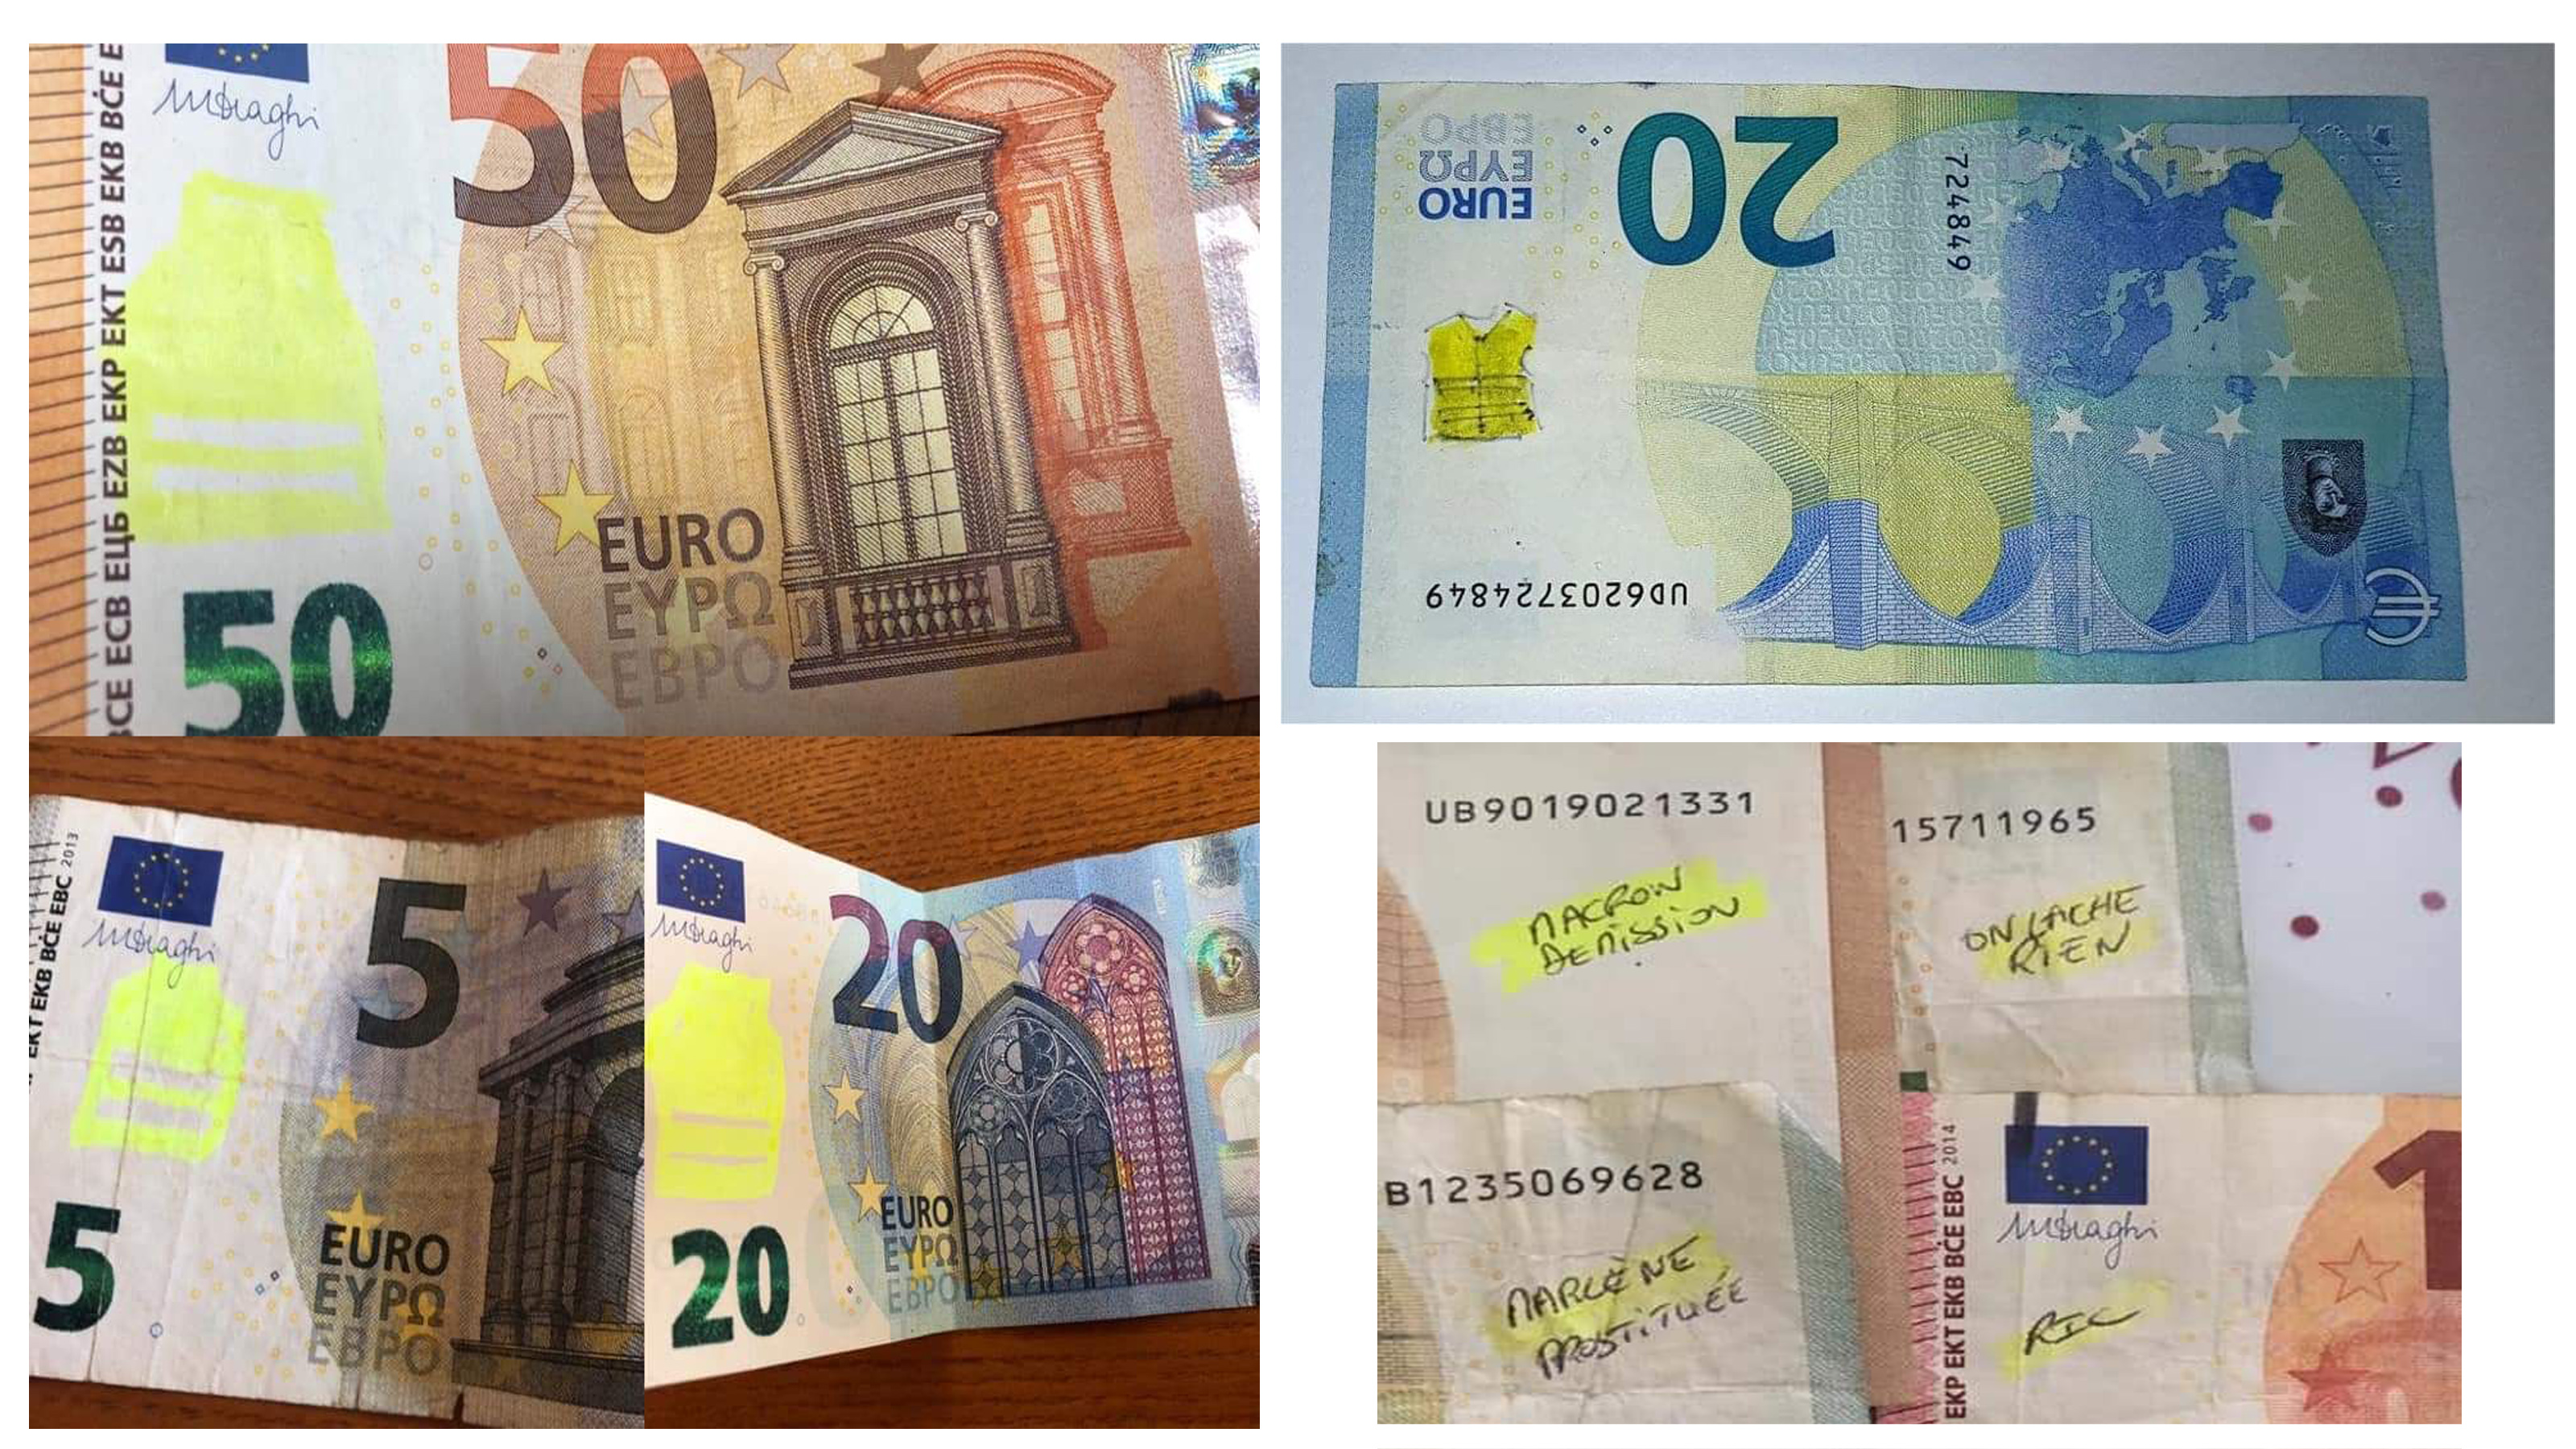 Yellow Vest Movement Starts a New Form of Protest — Burning Banknotes